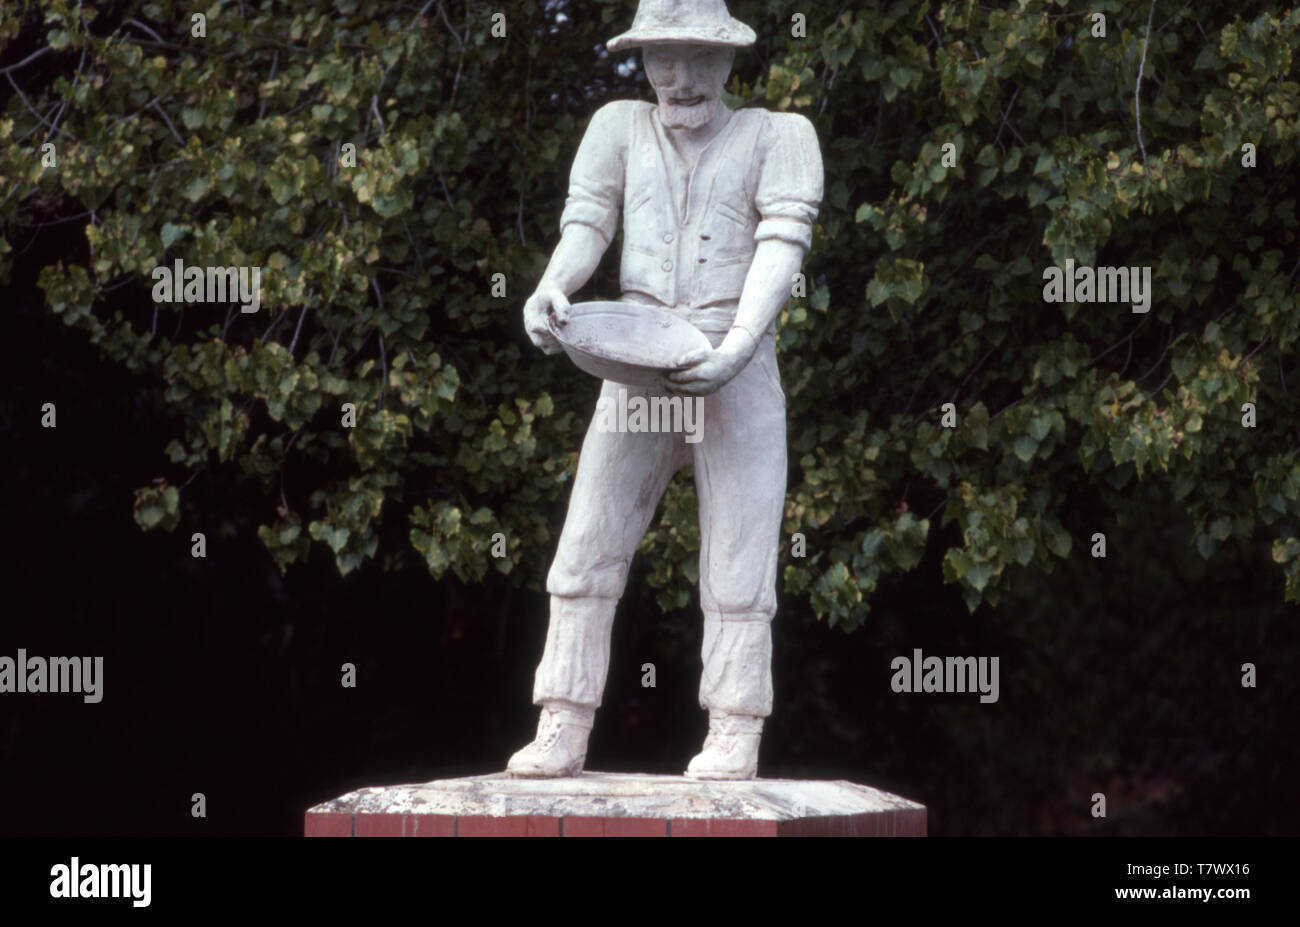 STATUE ON THE SITE OF GOLD DISCOVERY, FOSTER, VICTORIA, AUSTRALIA. - Stock Image